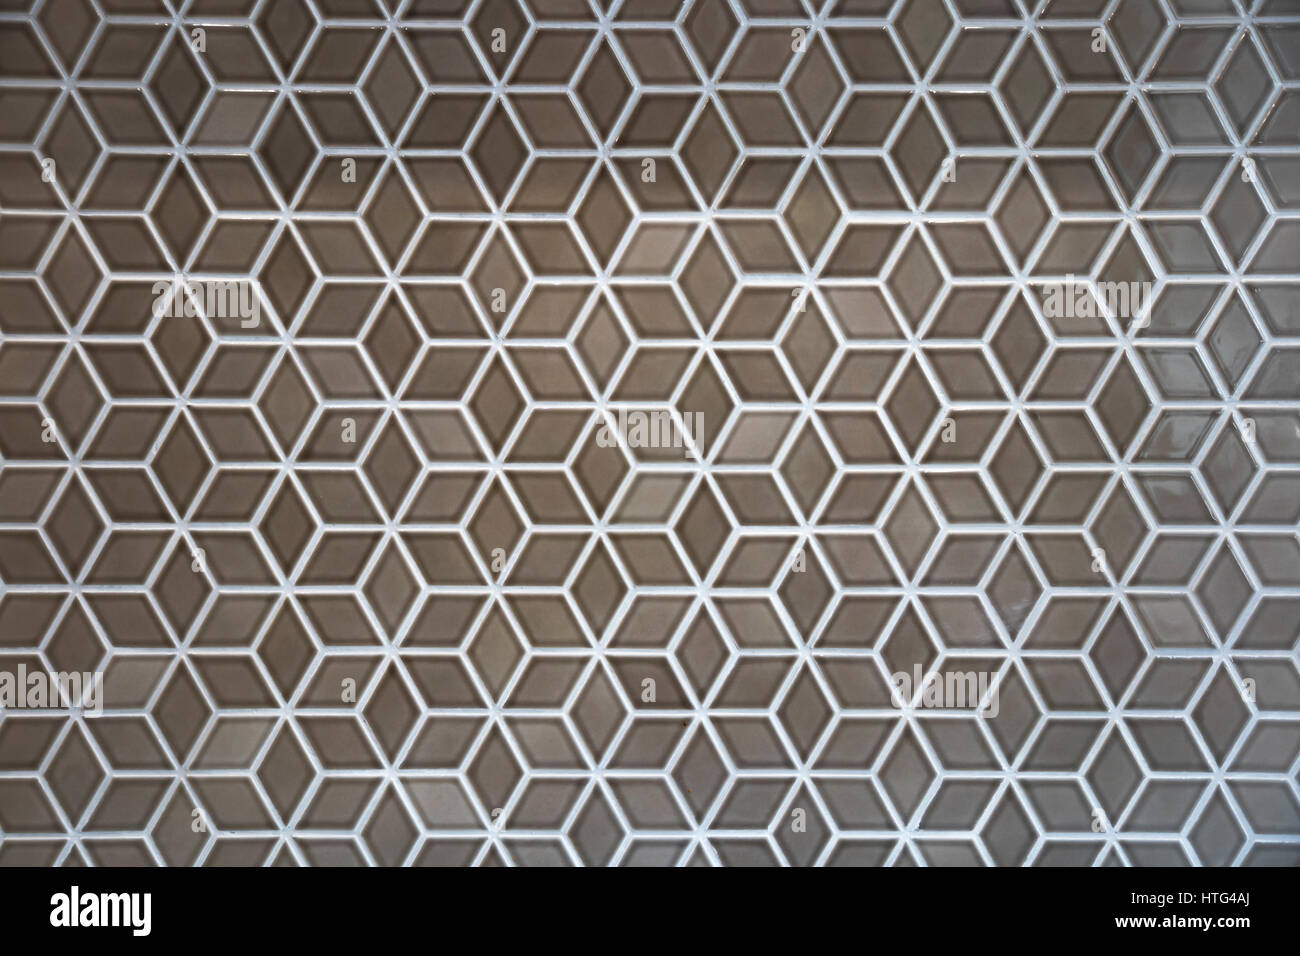 rhombus patterned tile : illusion of cube - Stock Image